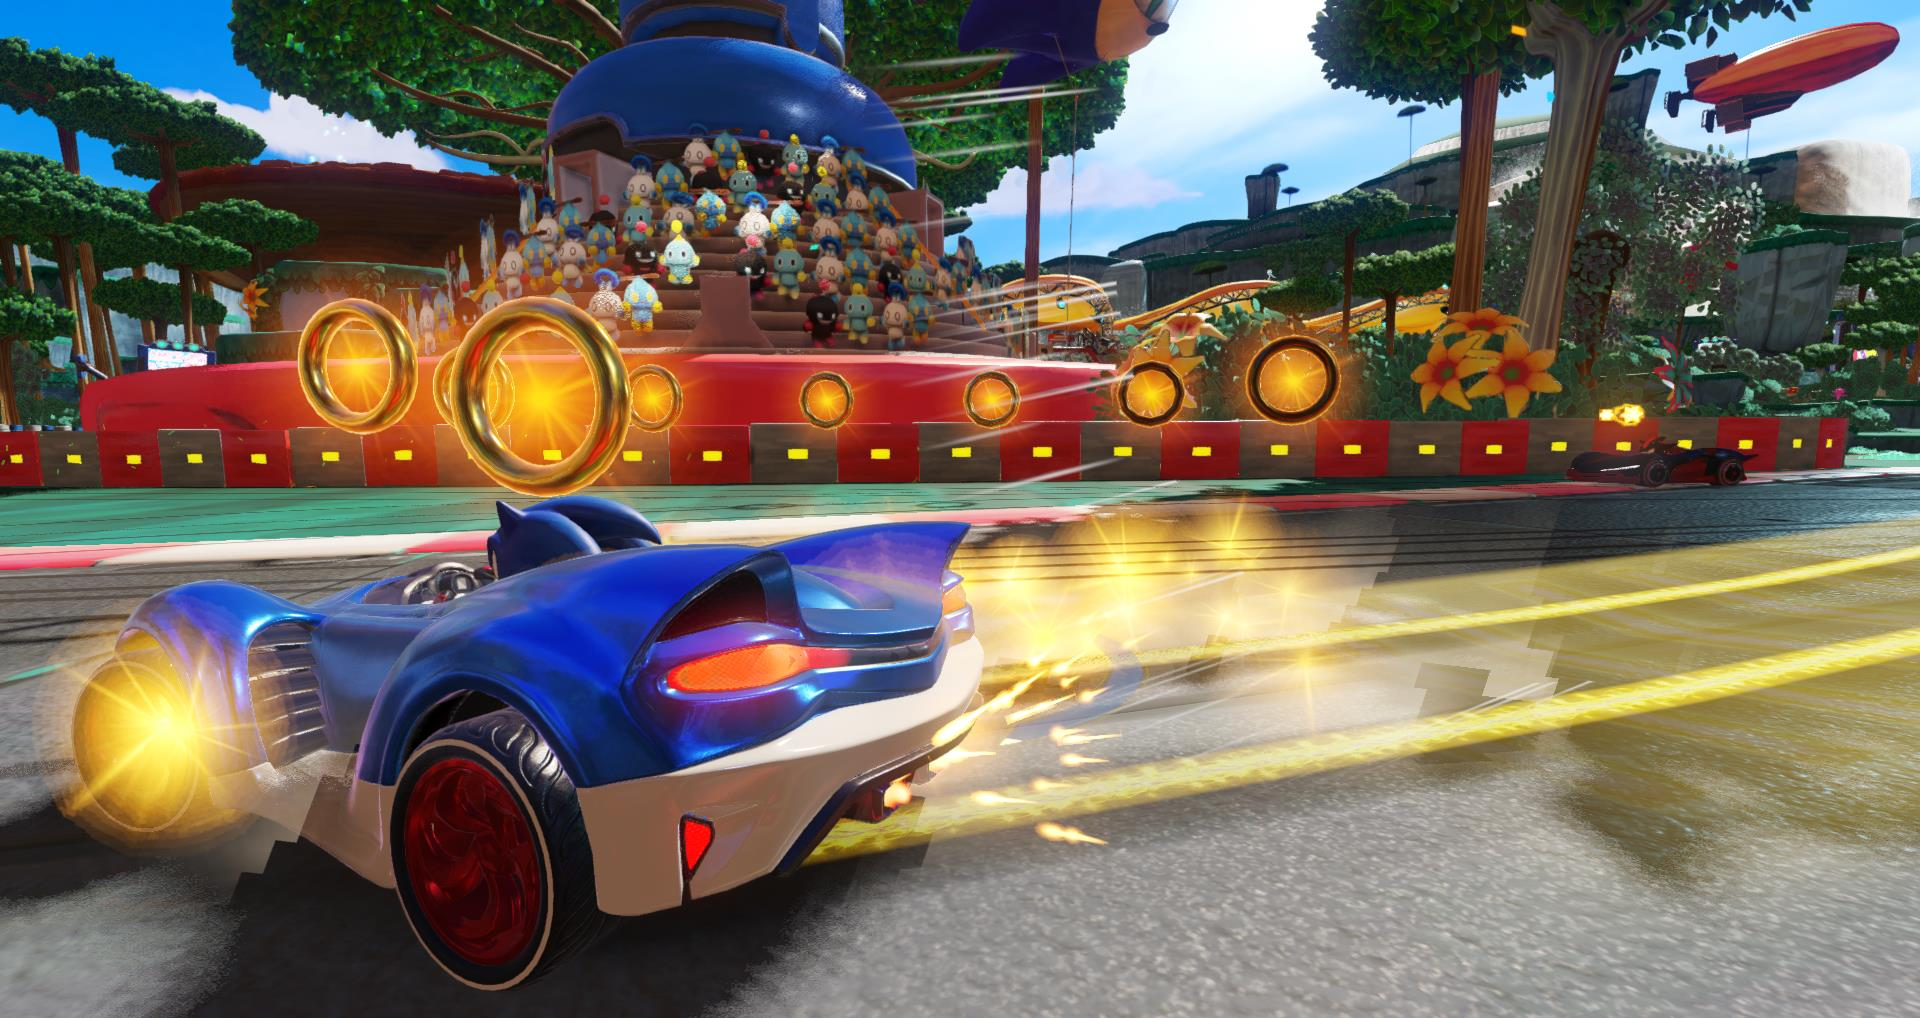 Team Sonic Racing Officially Revealed With A New Trailer; Releases This Winter